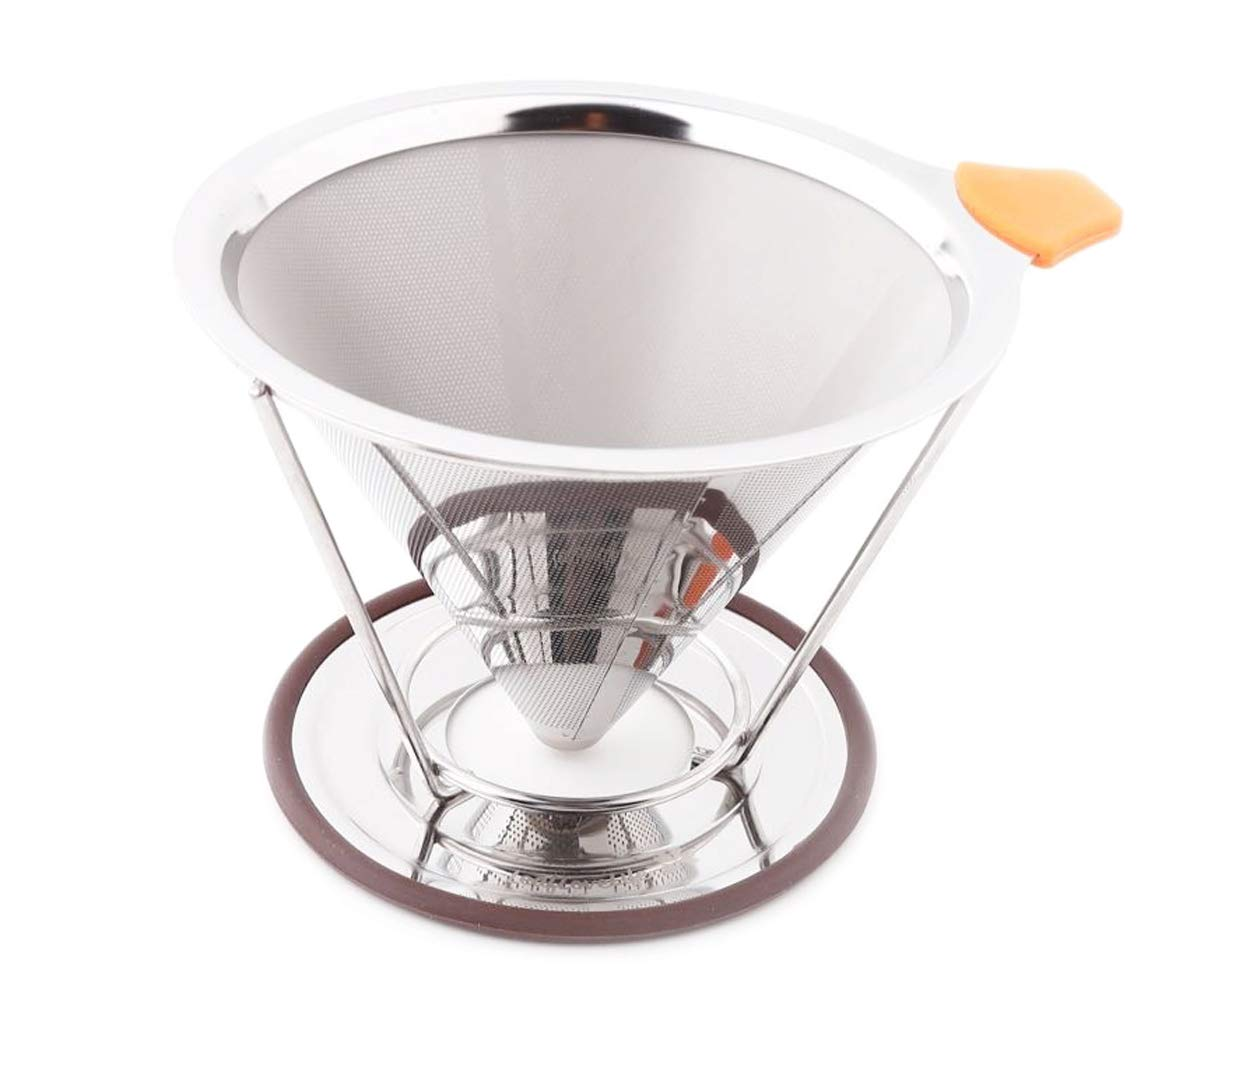 LeafLoveLife - Premium Pour Over Coffee Filter - Standard 1-to-4 Set Cup Stainless Steel, Ultra-Fine Double Mesh Paperless Dripper Cone with Silicone, Non-Slip Handle - Dishwasher Safe